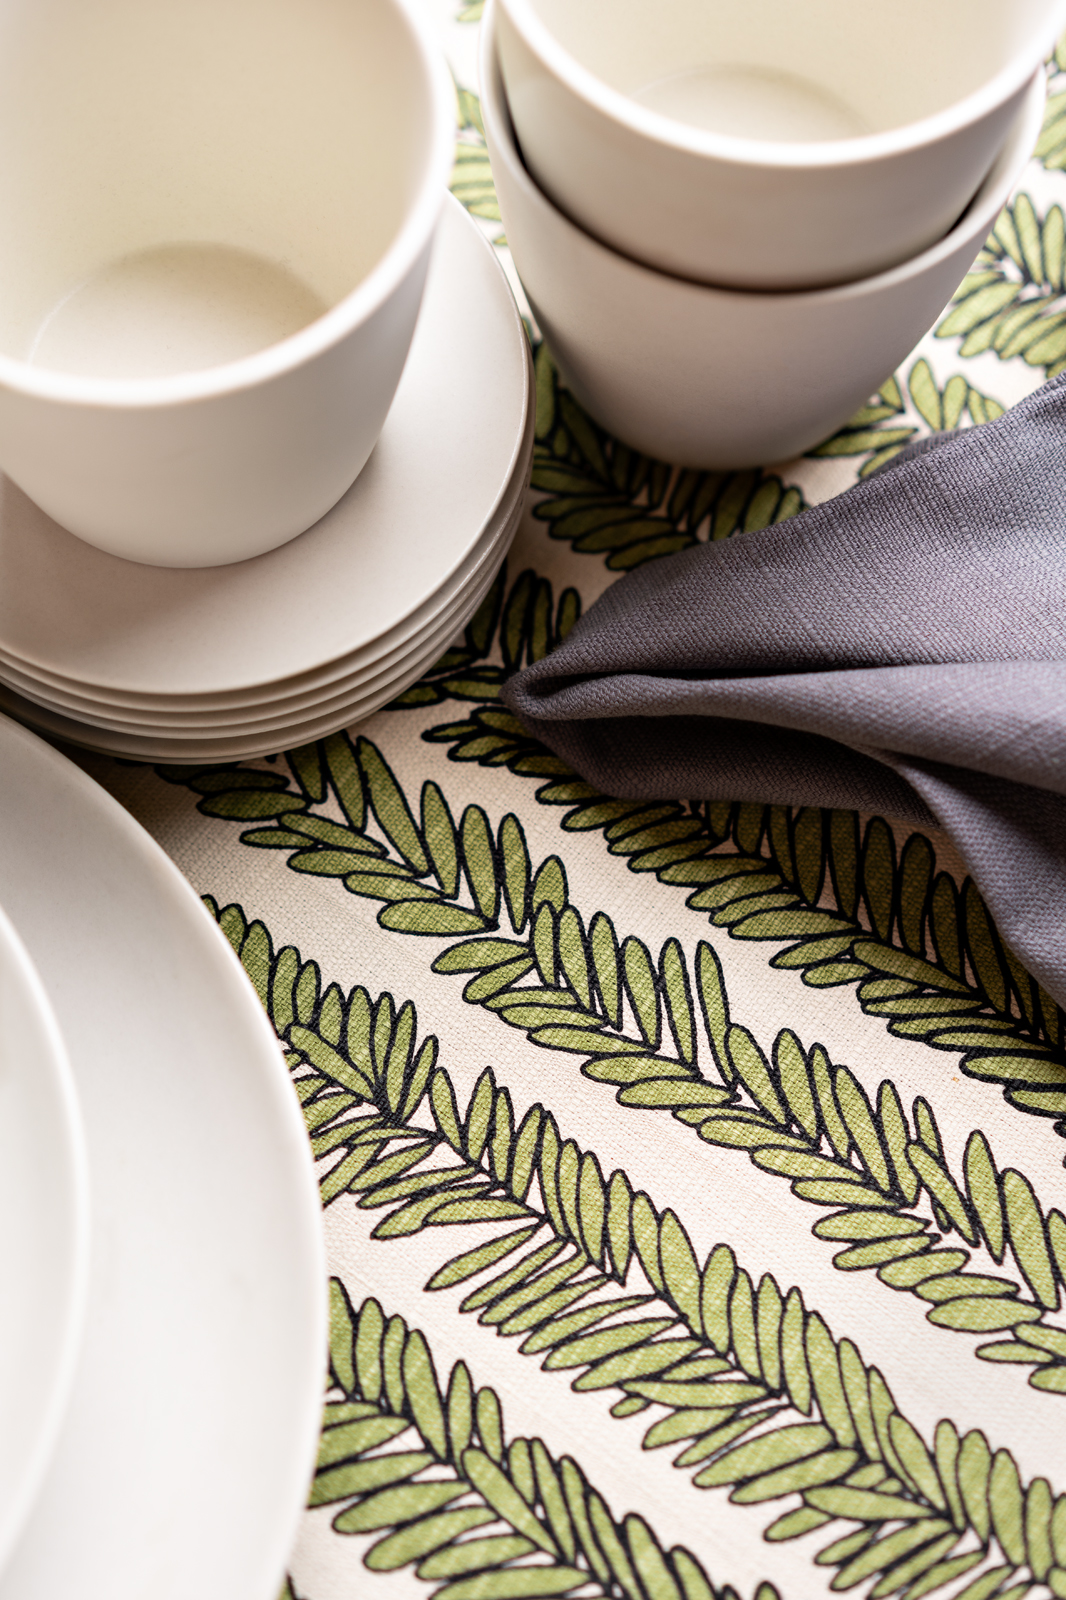 a table cloth with some cups and plates